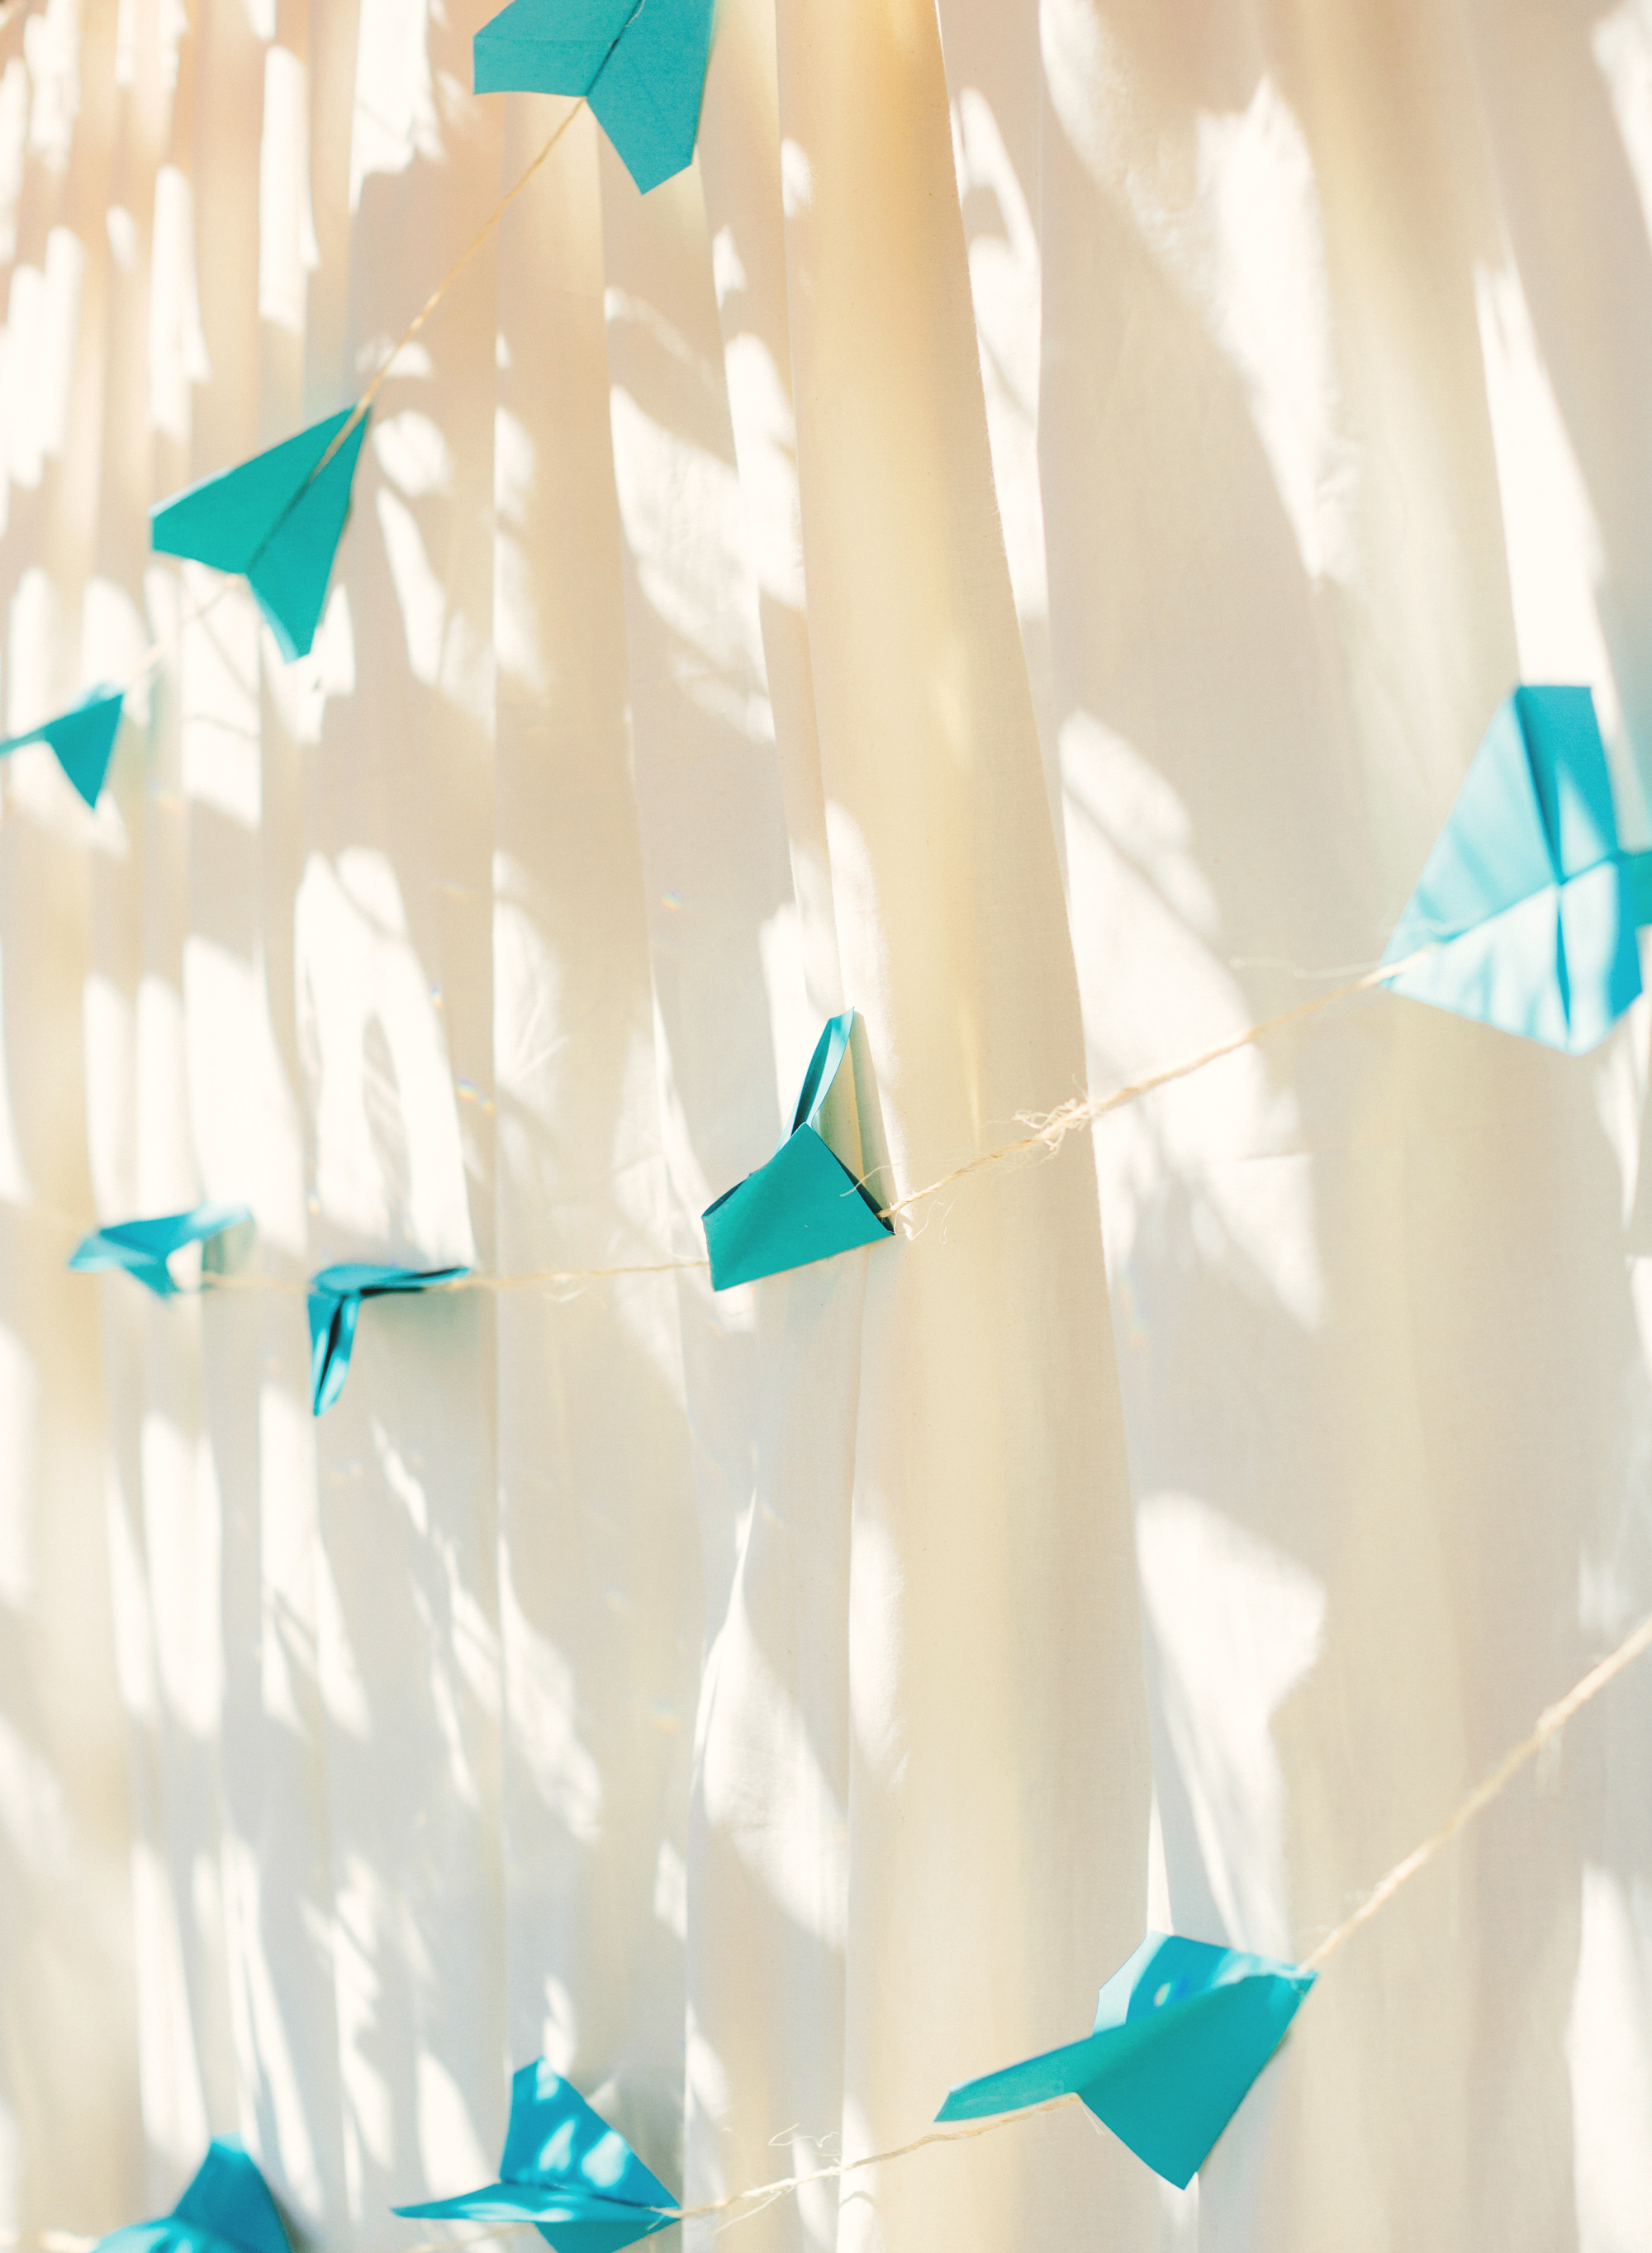 Paper airplanes backdrop for the cake table